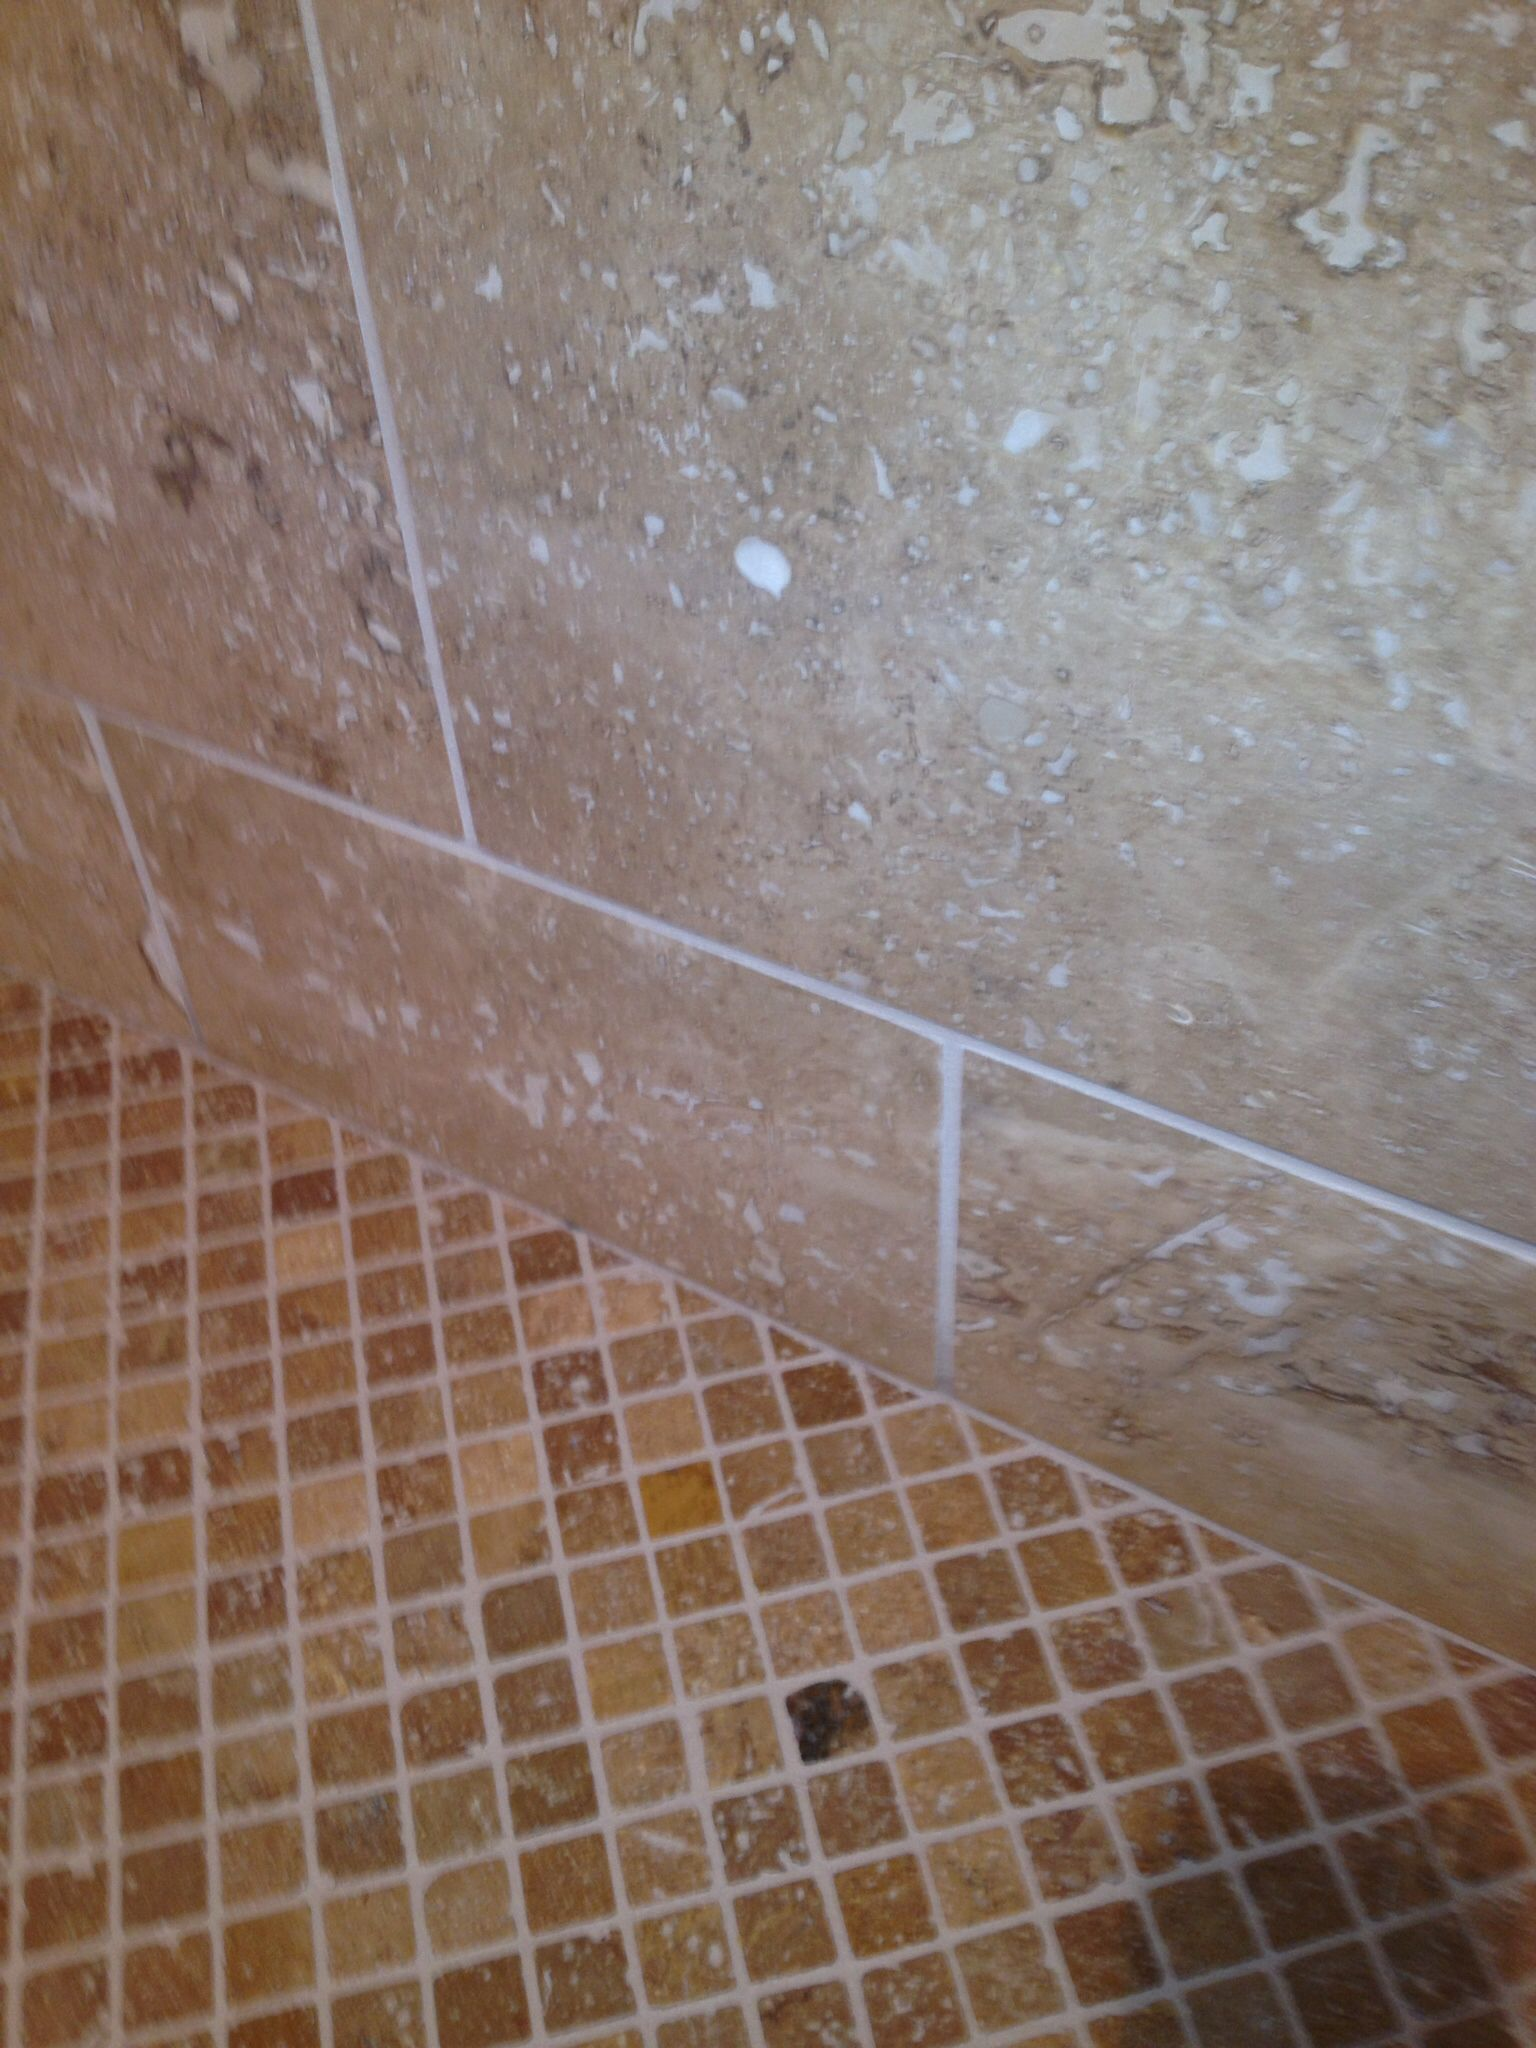 1x1 daltile be11 tumbled light noche used on shower floor in 1x1 daltile be11 tumbled light noche used on shower floor in conjunction with 12x12 be14 mendocino dailygadgetfo Image collections